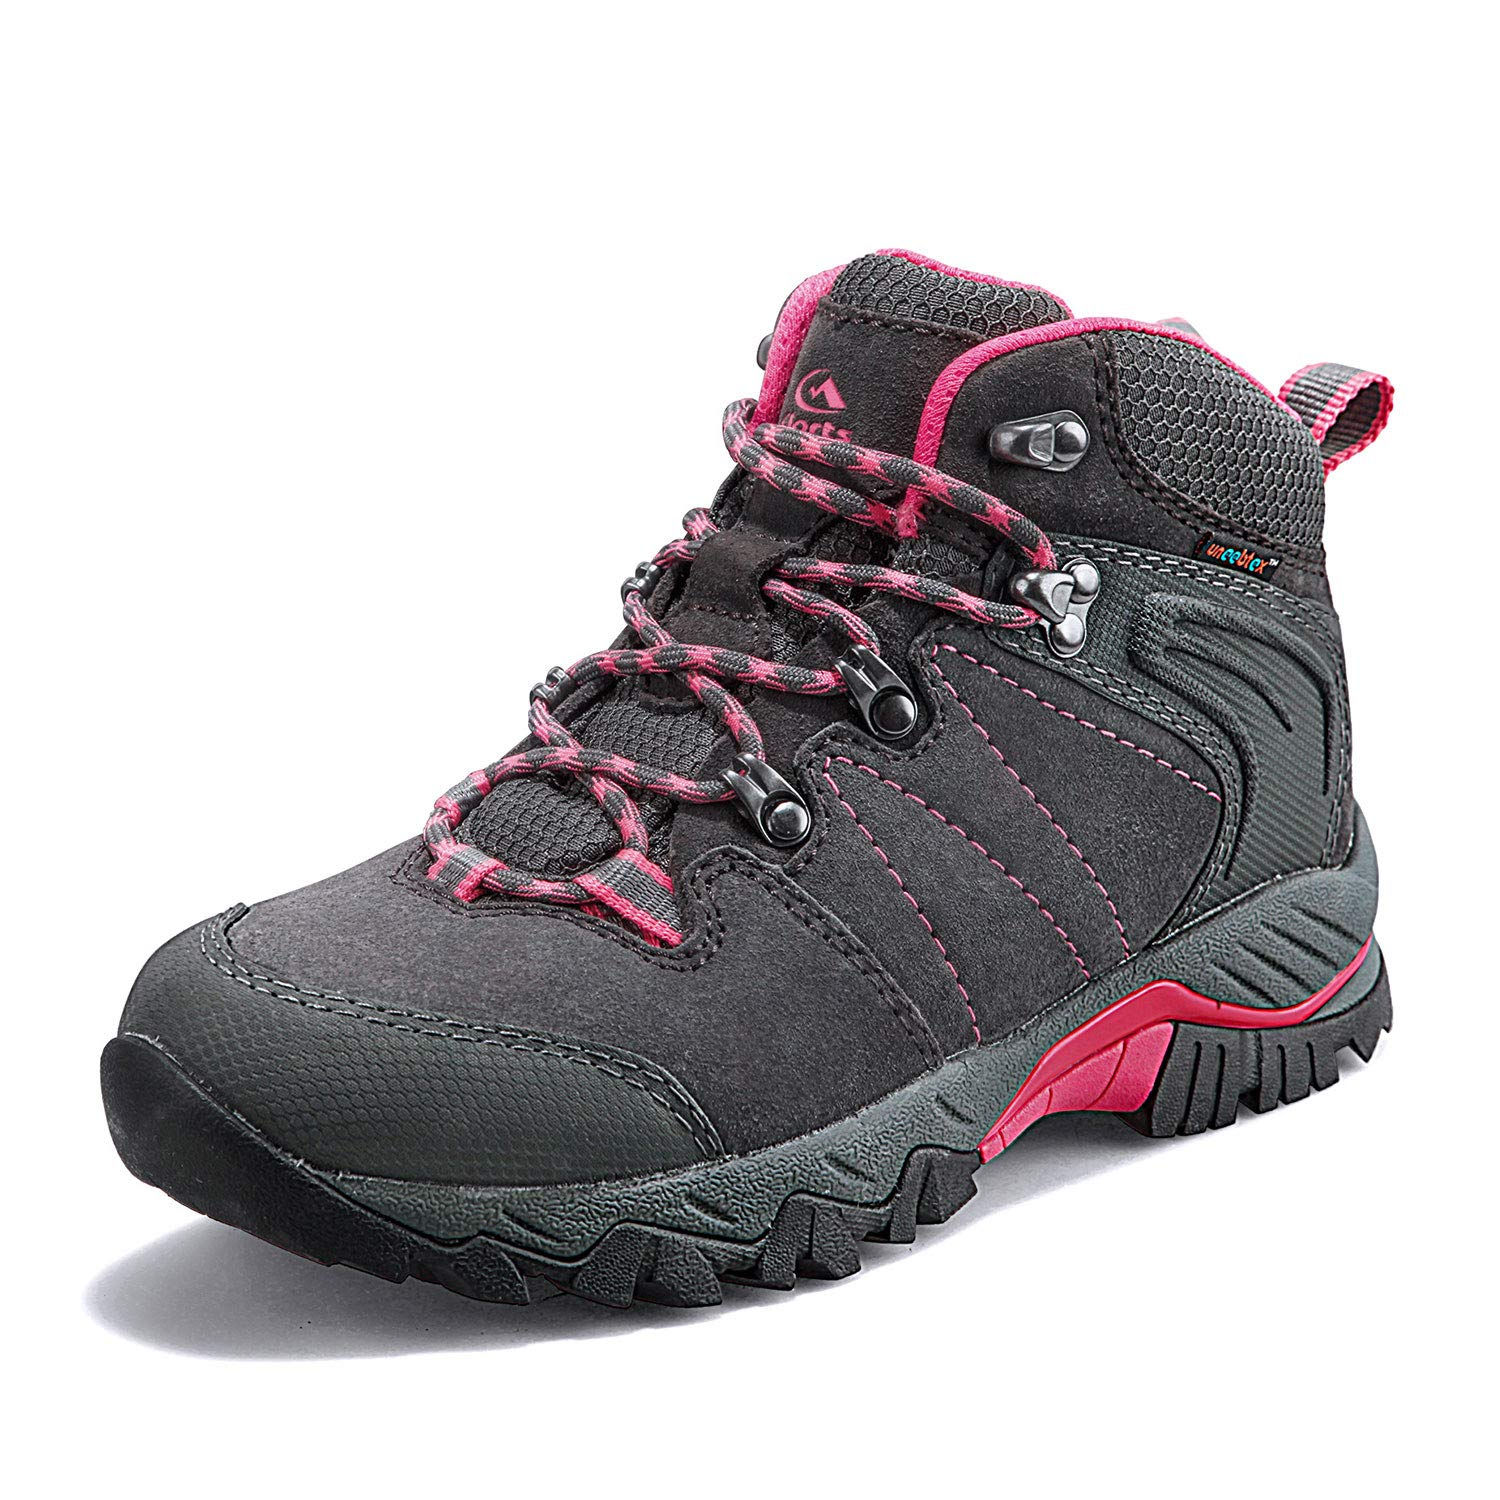 Clorts Women's Classic Hiking Boots Waterproof Suede Leather Lightweight Hiking Shoes Grey/Pink US Women Size 7.5 Medium Width